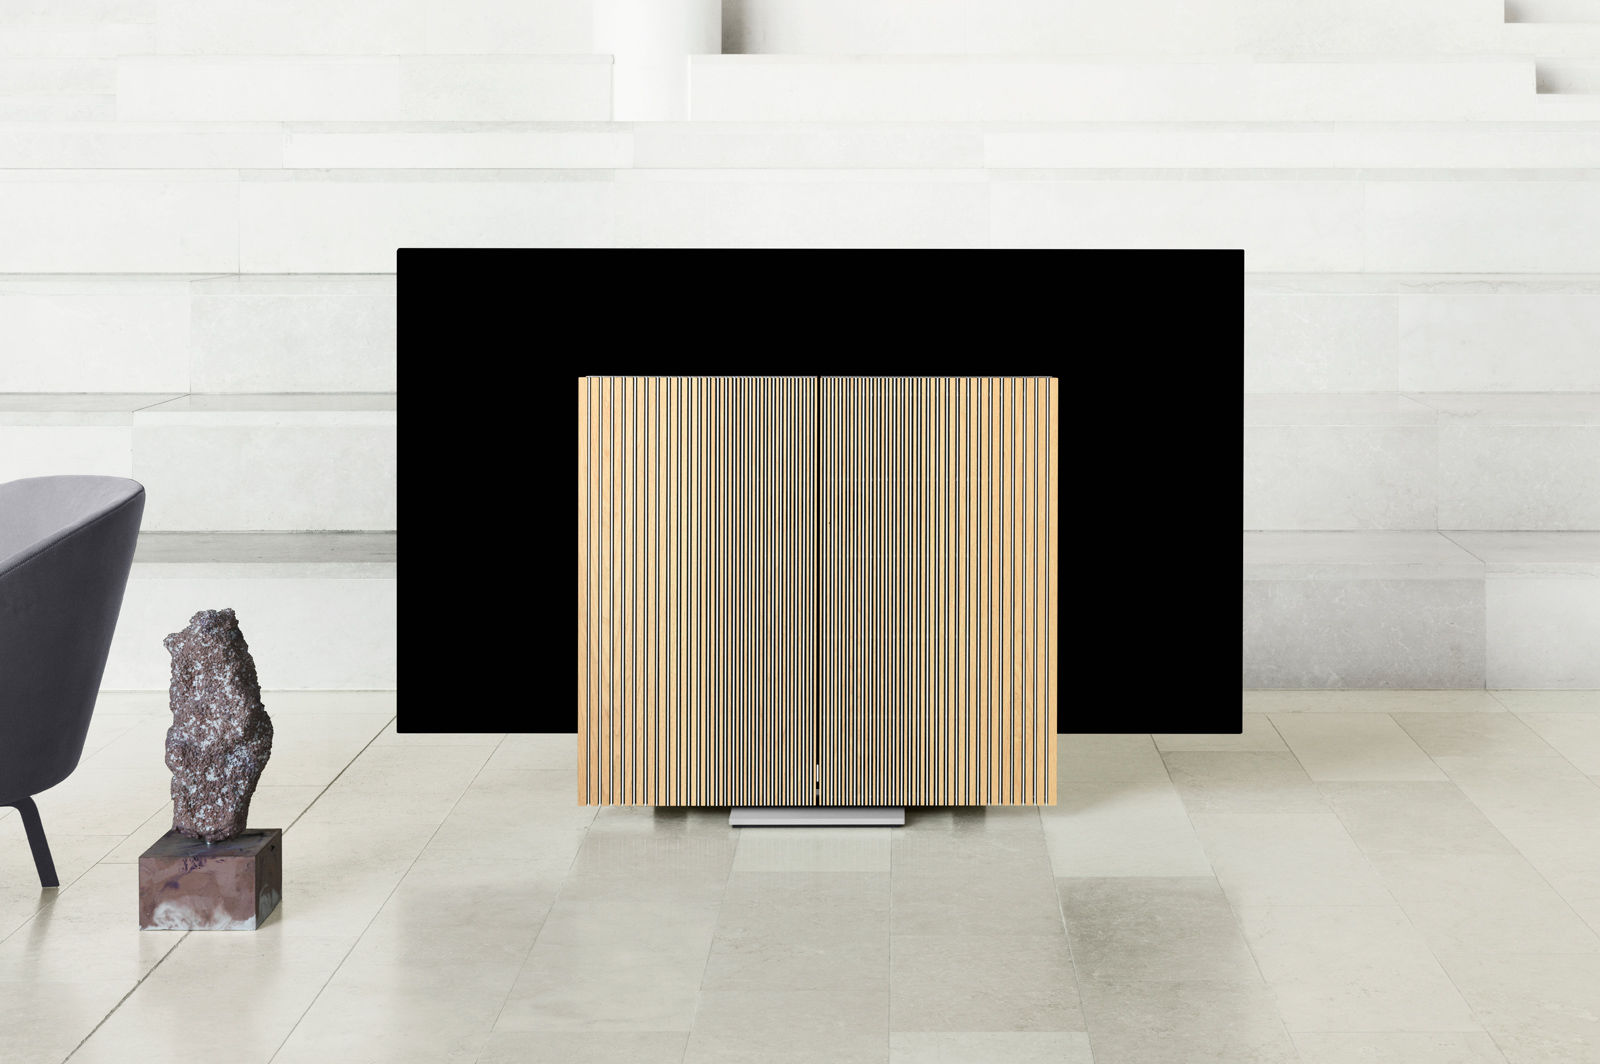 Bang And Olufsen Beovision 11 bang & olufsen unveils the beovision harmony, an all-in-one